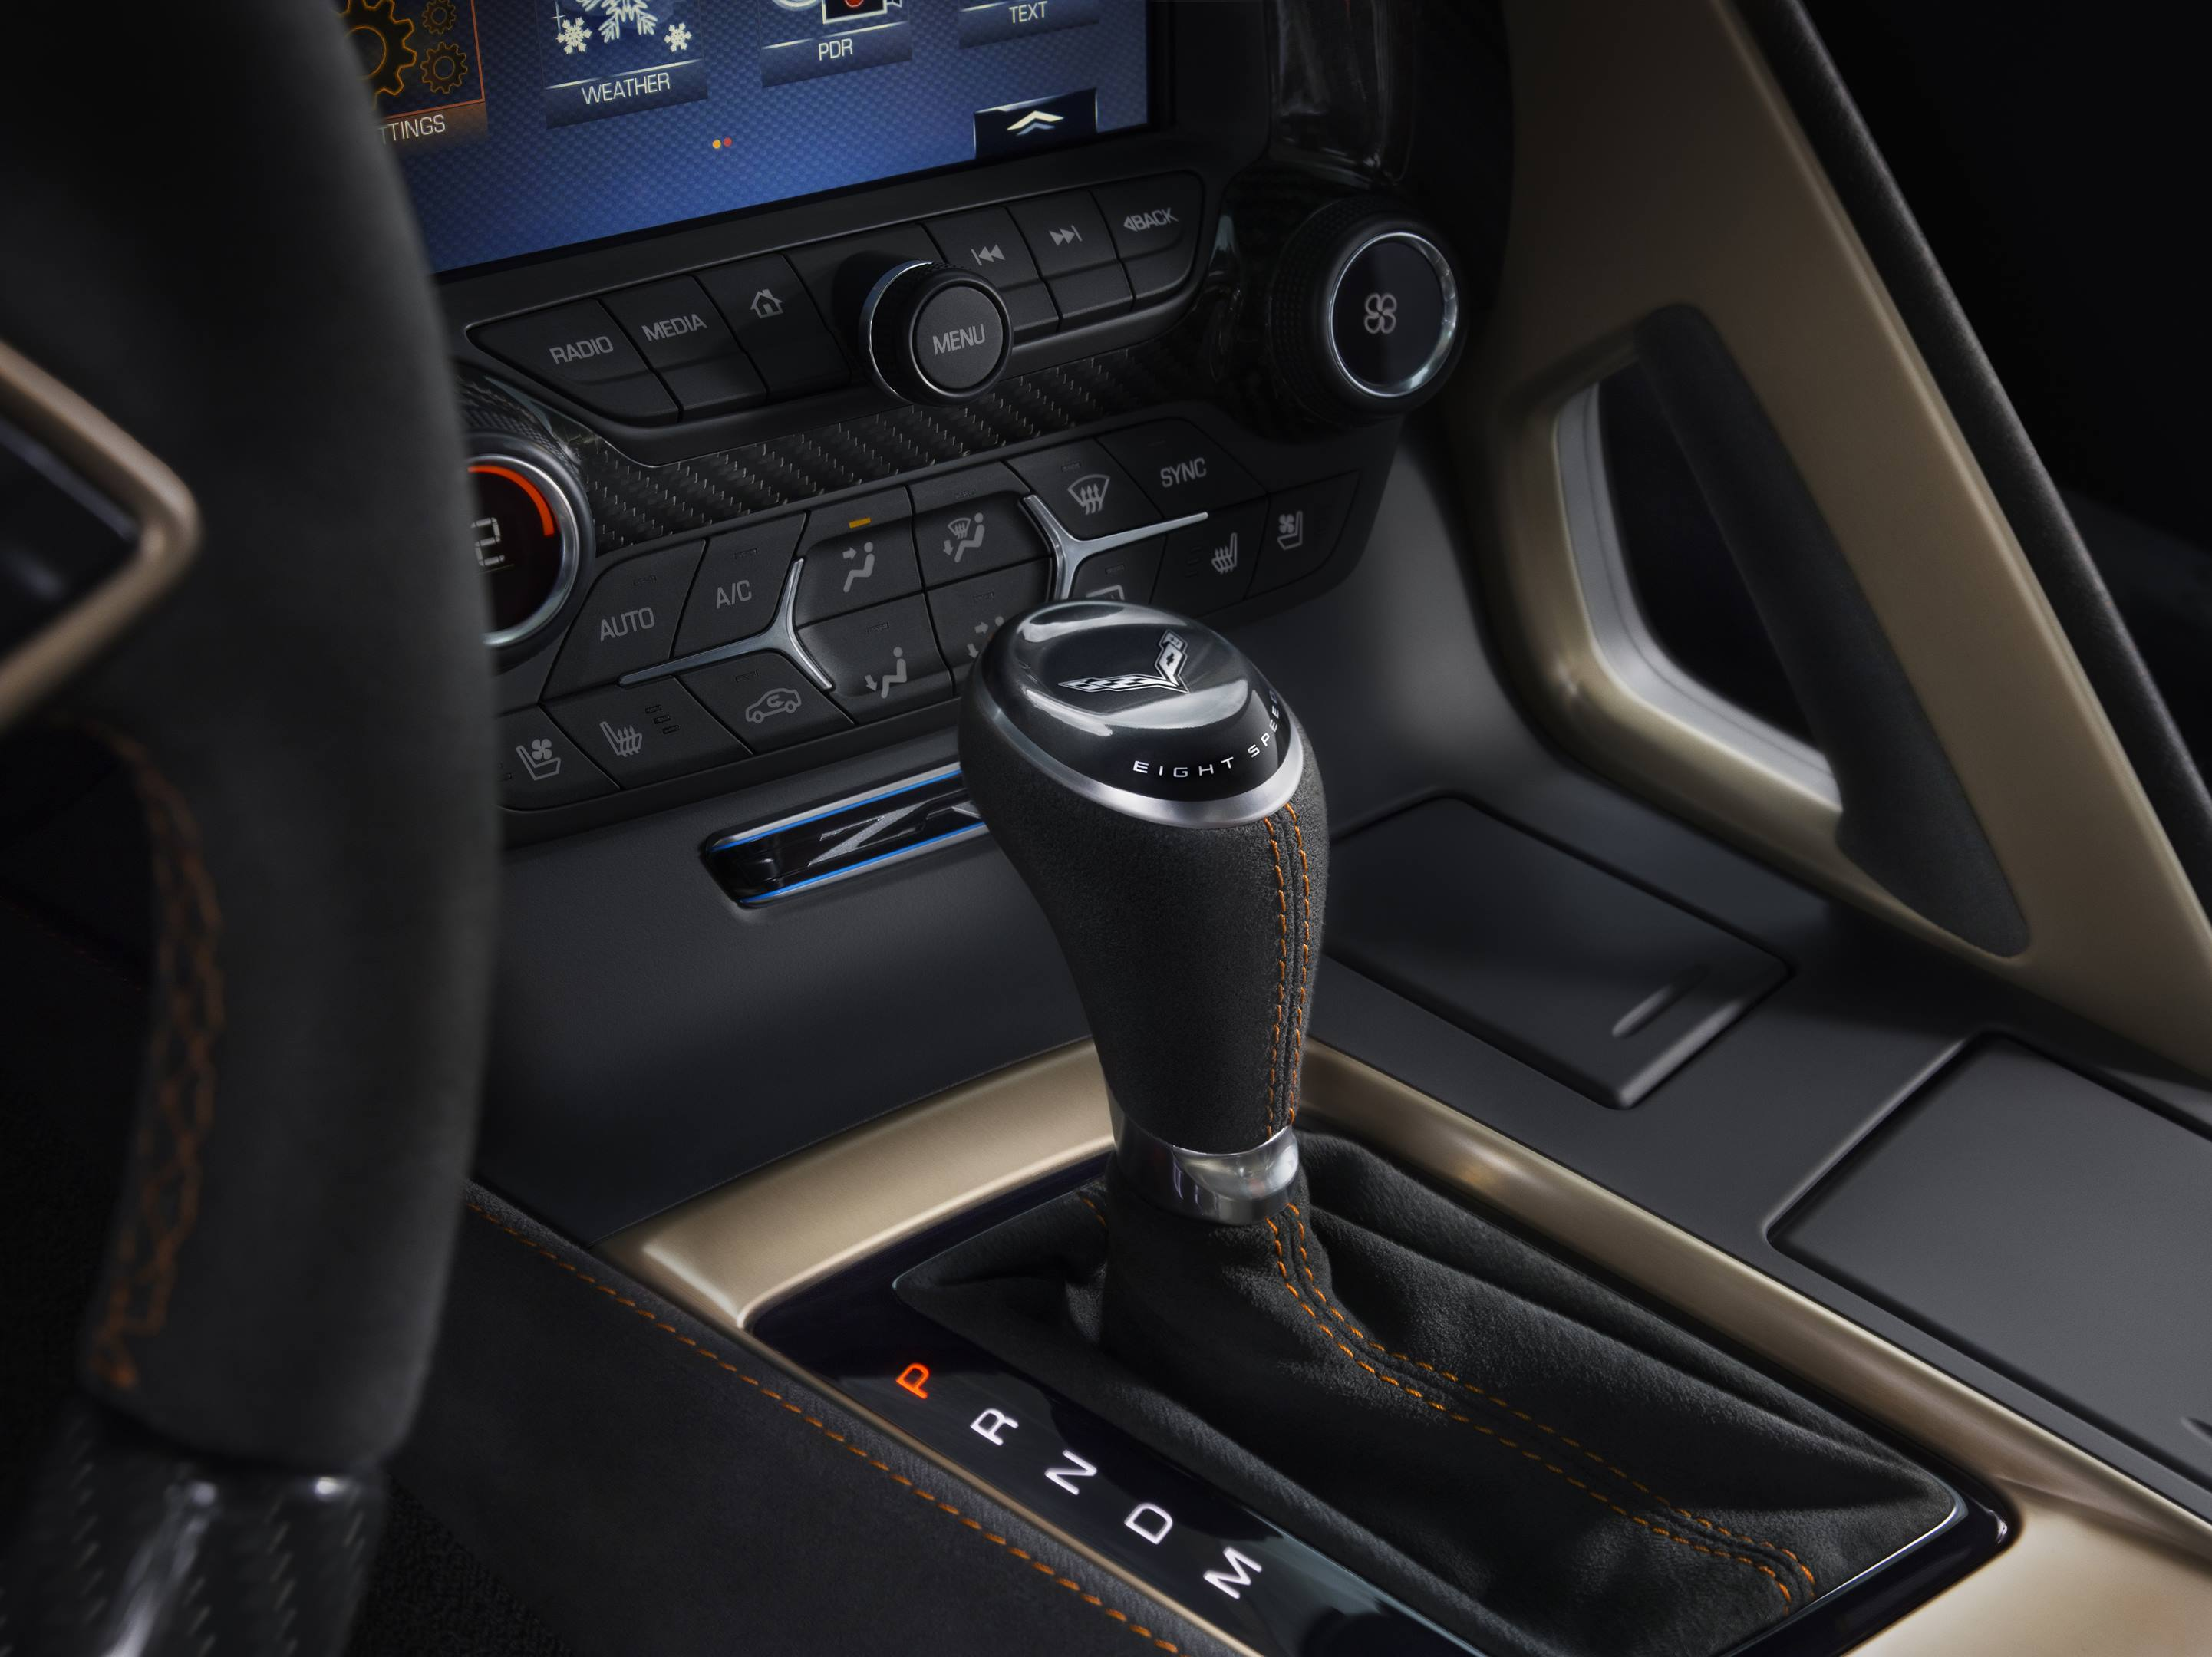 2019 Chevrolet Corvette ZR1 Shifter Console Shot